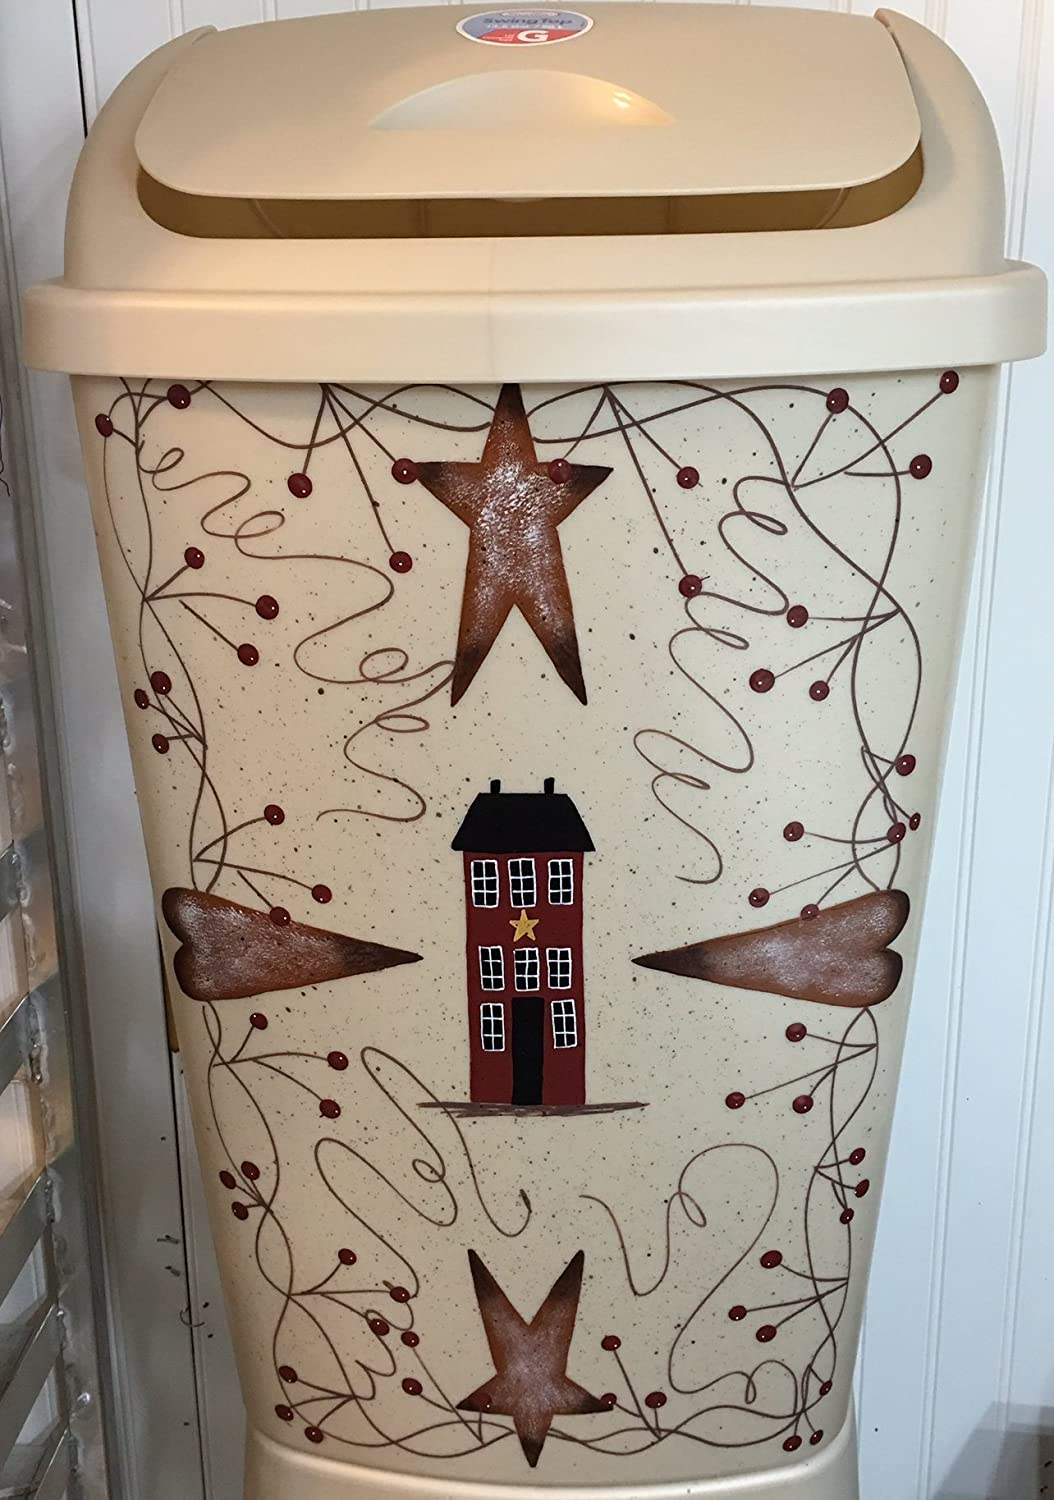 Primitive Country Decor Hand Painted Rusty Tin Stars, Saltbox House Kitchen Trash Waste Can 13 Gallon Made in USA